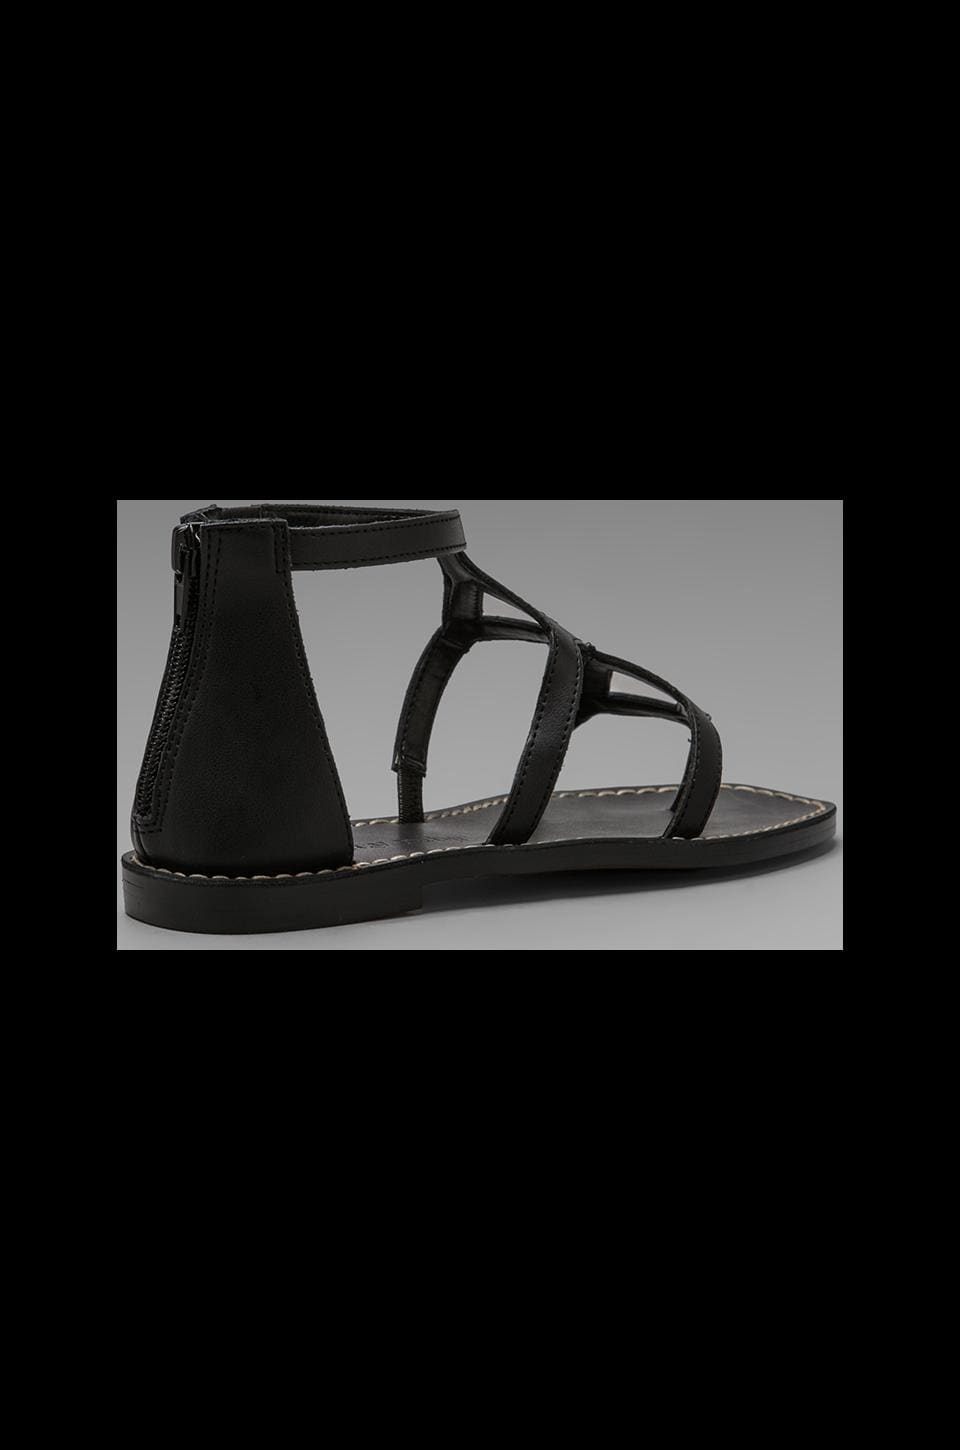 Luxury Rebel Kendall Sandal in Black